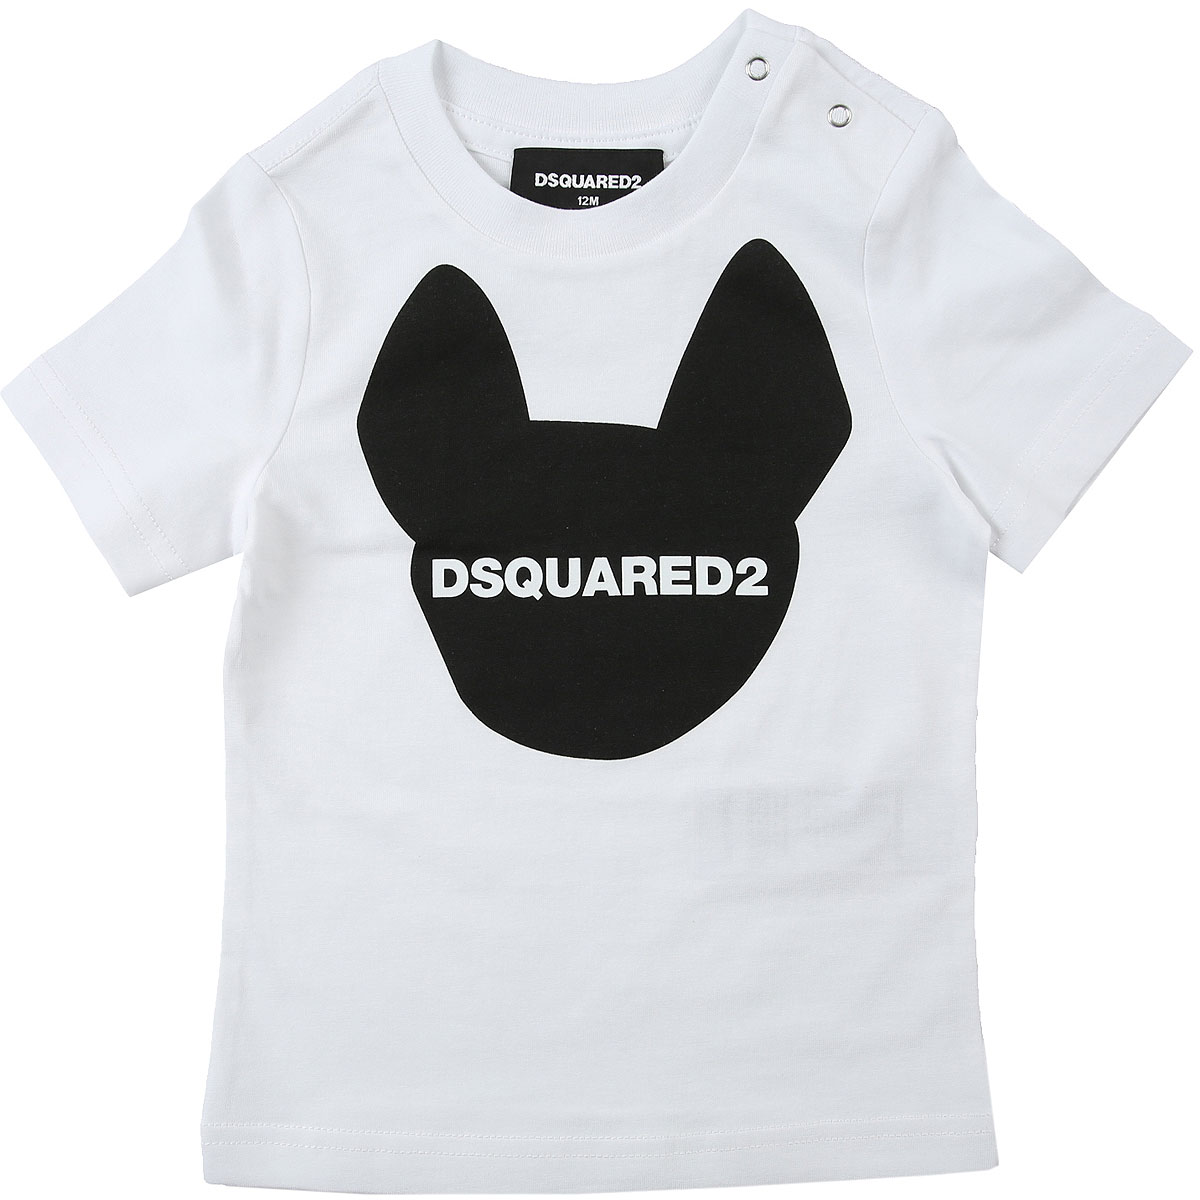 Dsquared2 Baby T-Shirt for Boys On Sale, White, Cotton, 2019, 12 M 18M 2Y 6M 9M